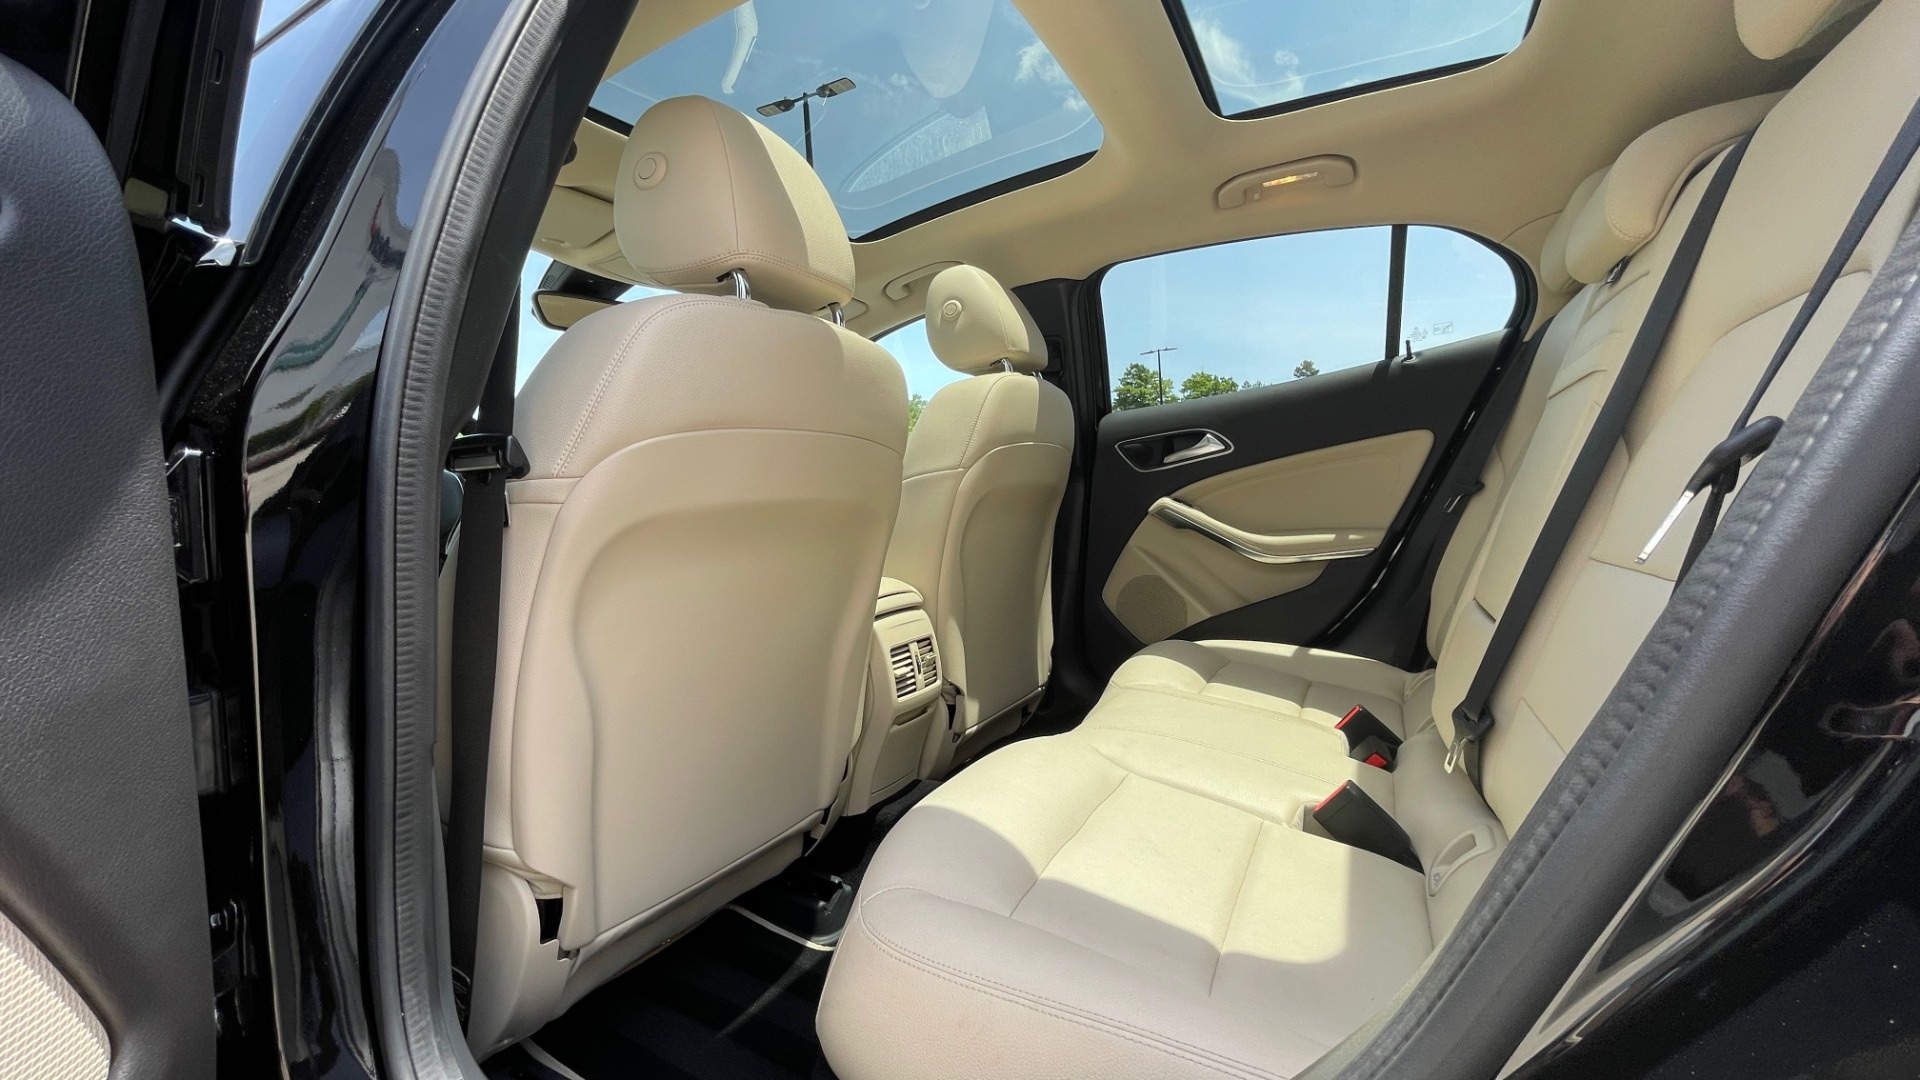 Used 2018 Mercedes-Benz GLA 250 4MATIC SUV / PANO-ROOF / HTD STS / BLIND SPOT ASST / APPLE for sale $31,995 at Formula Imports in Charlotte NC 28227 66